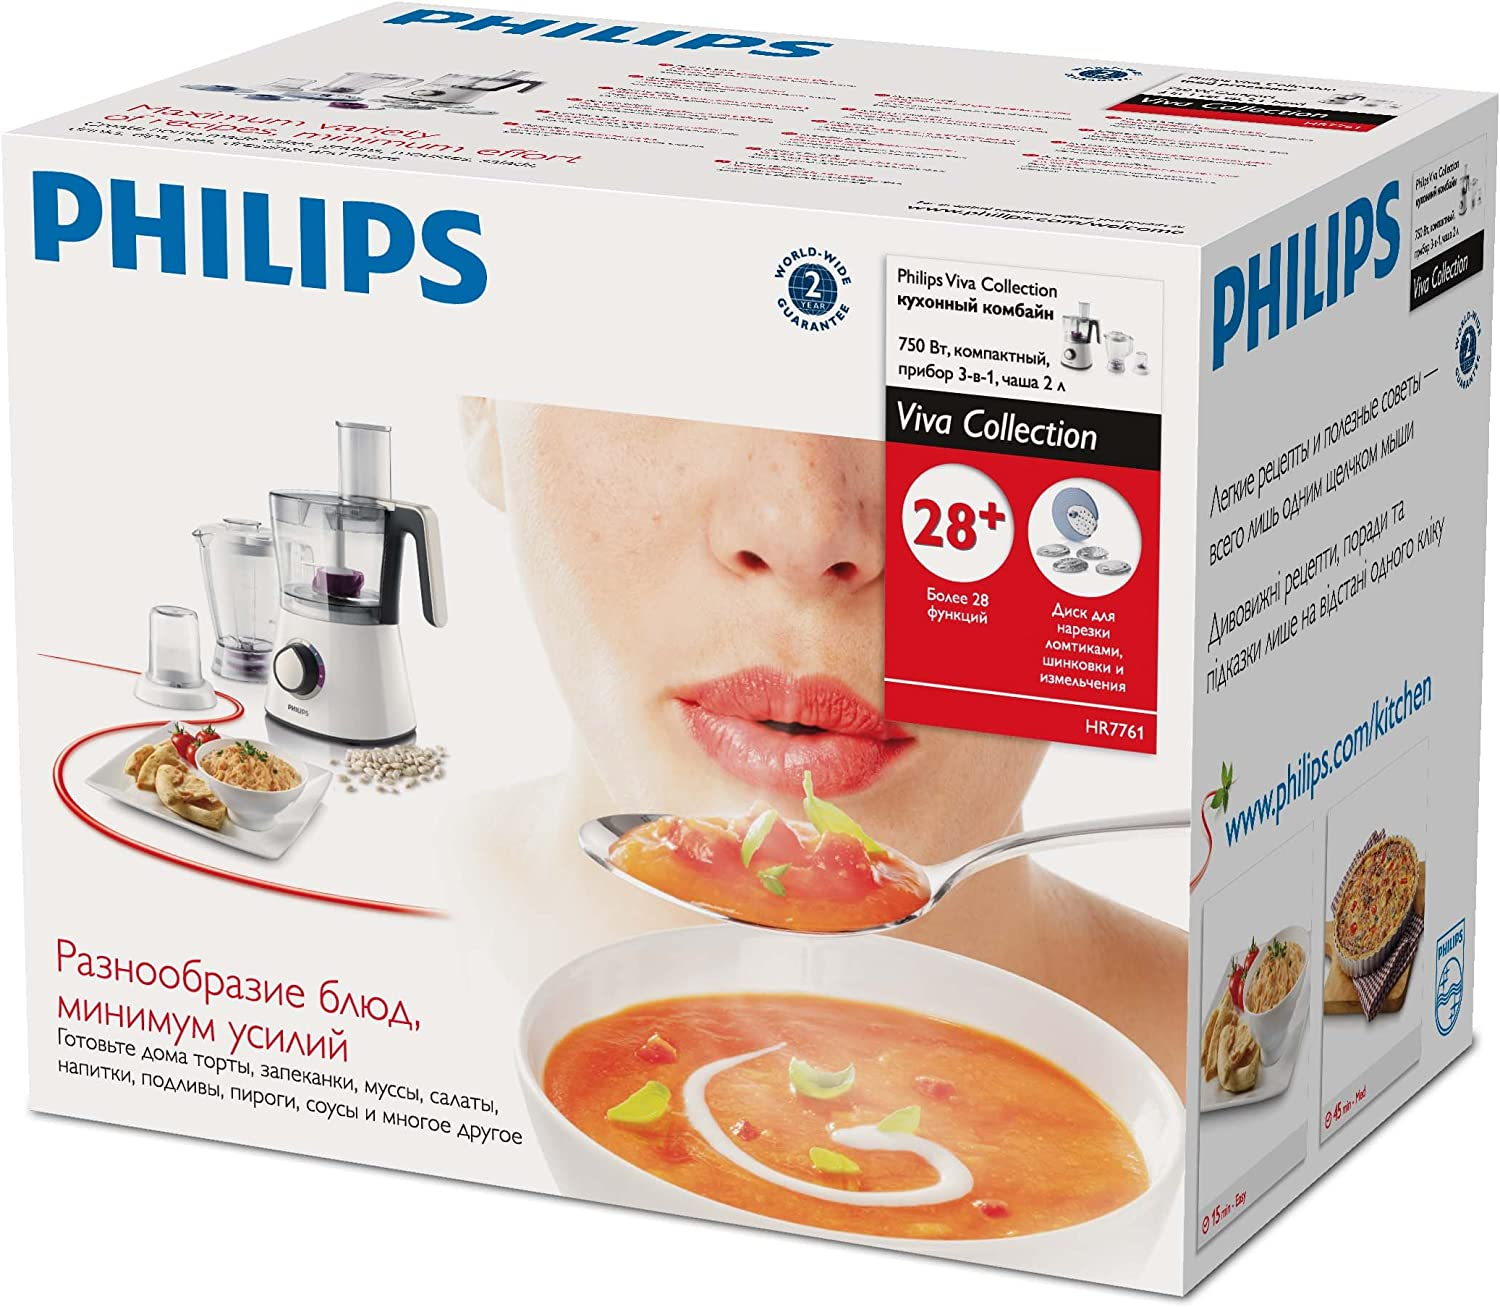 Blanc PHILIPS HR7761//00 Robot multifonction Viva Collection